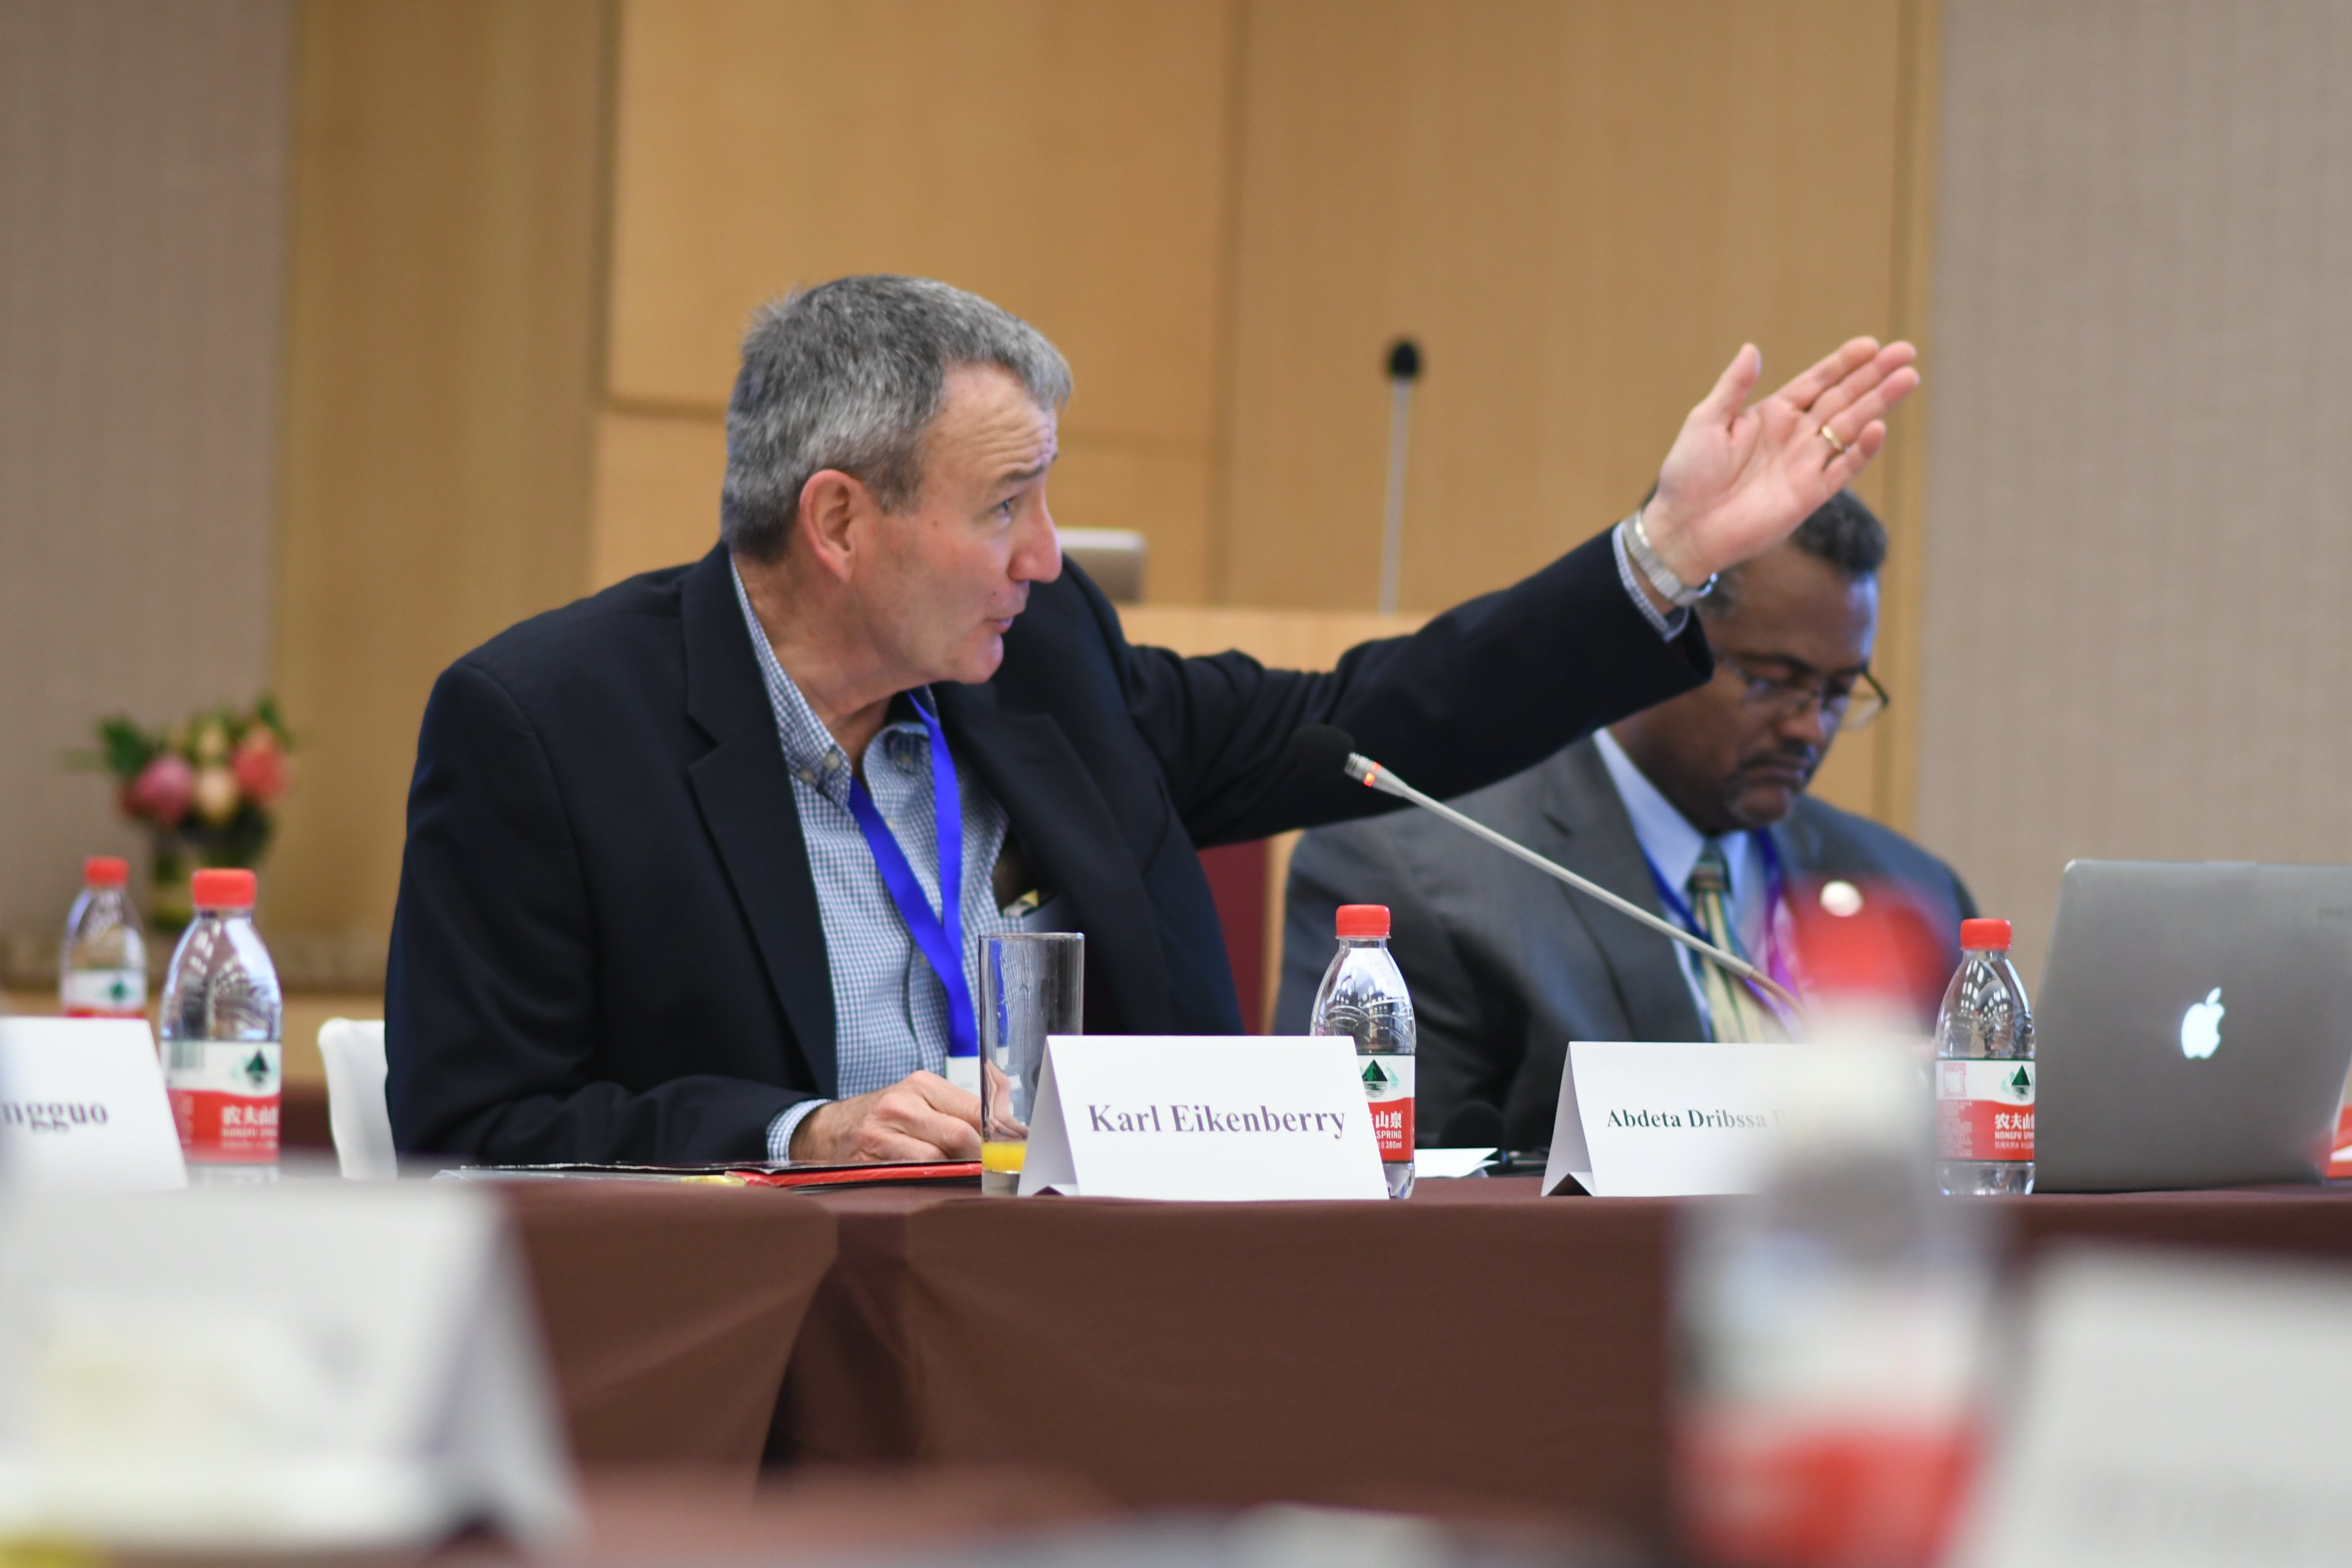 USASI Director Karl Eikenberry addresses one of the sessions